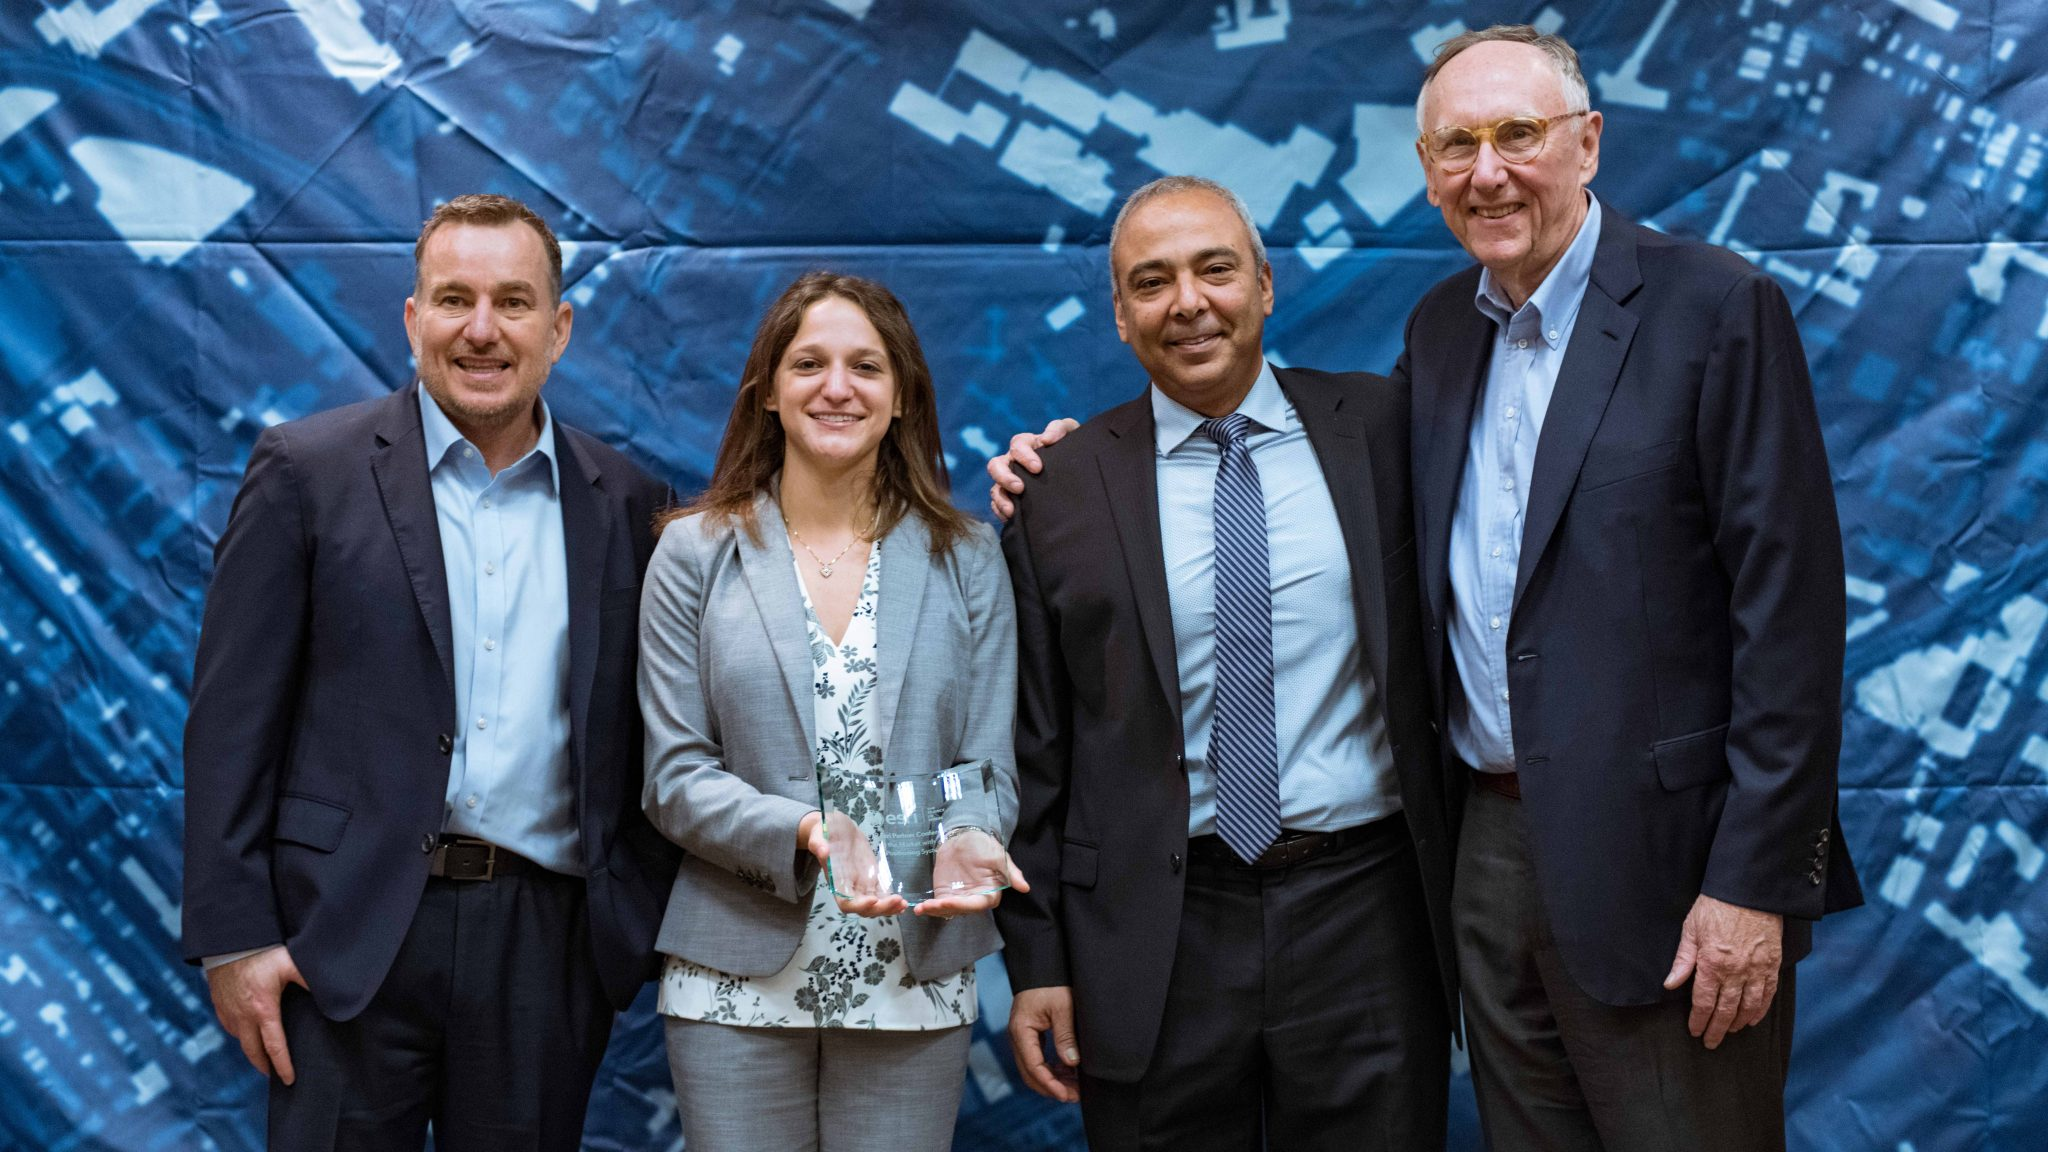 Left to Right: Esri Director of Global Business Development Jeff Peters, Eos Director of Marketing Sarah Alban, Eos CTO Jean-Yves Lauture, Esri President Jack Dangermond